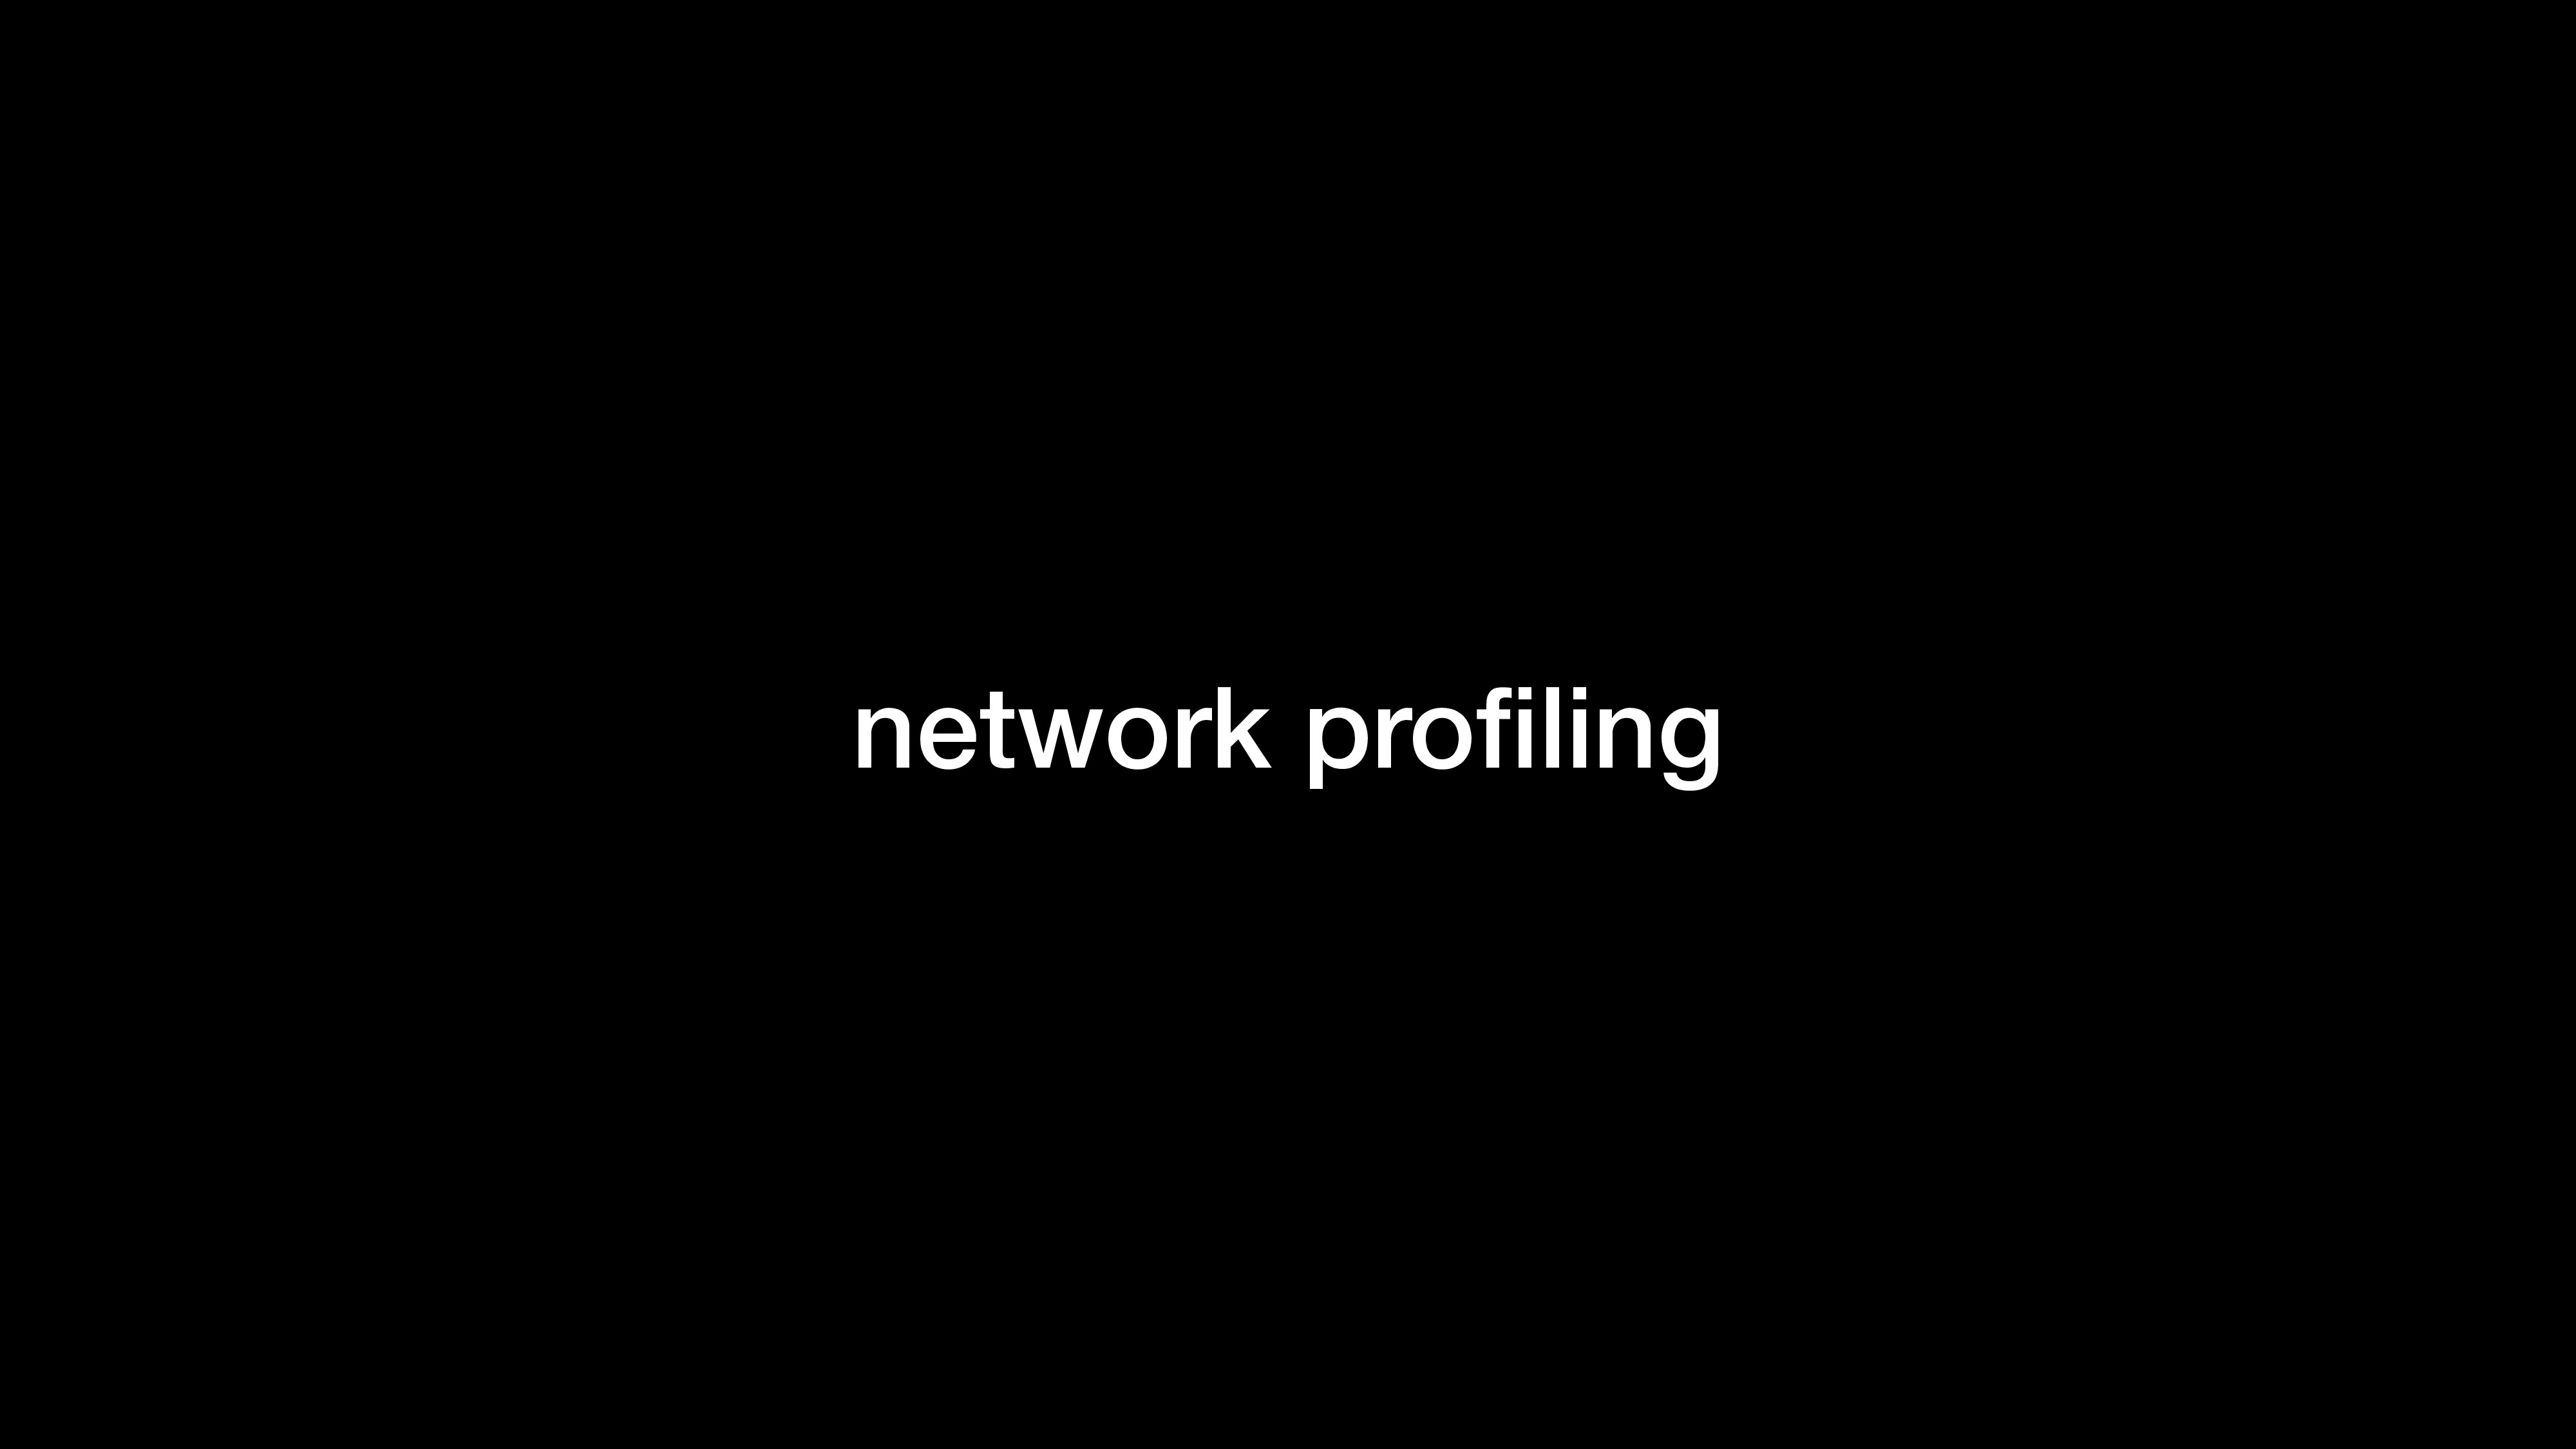 network profiling